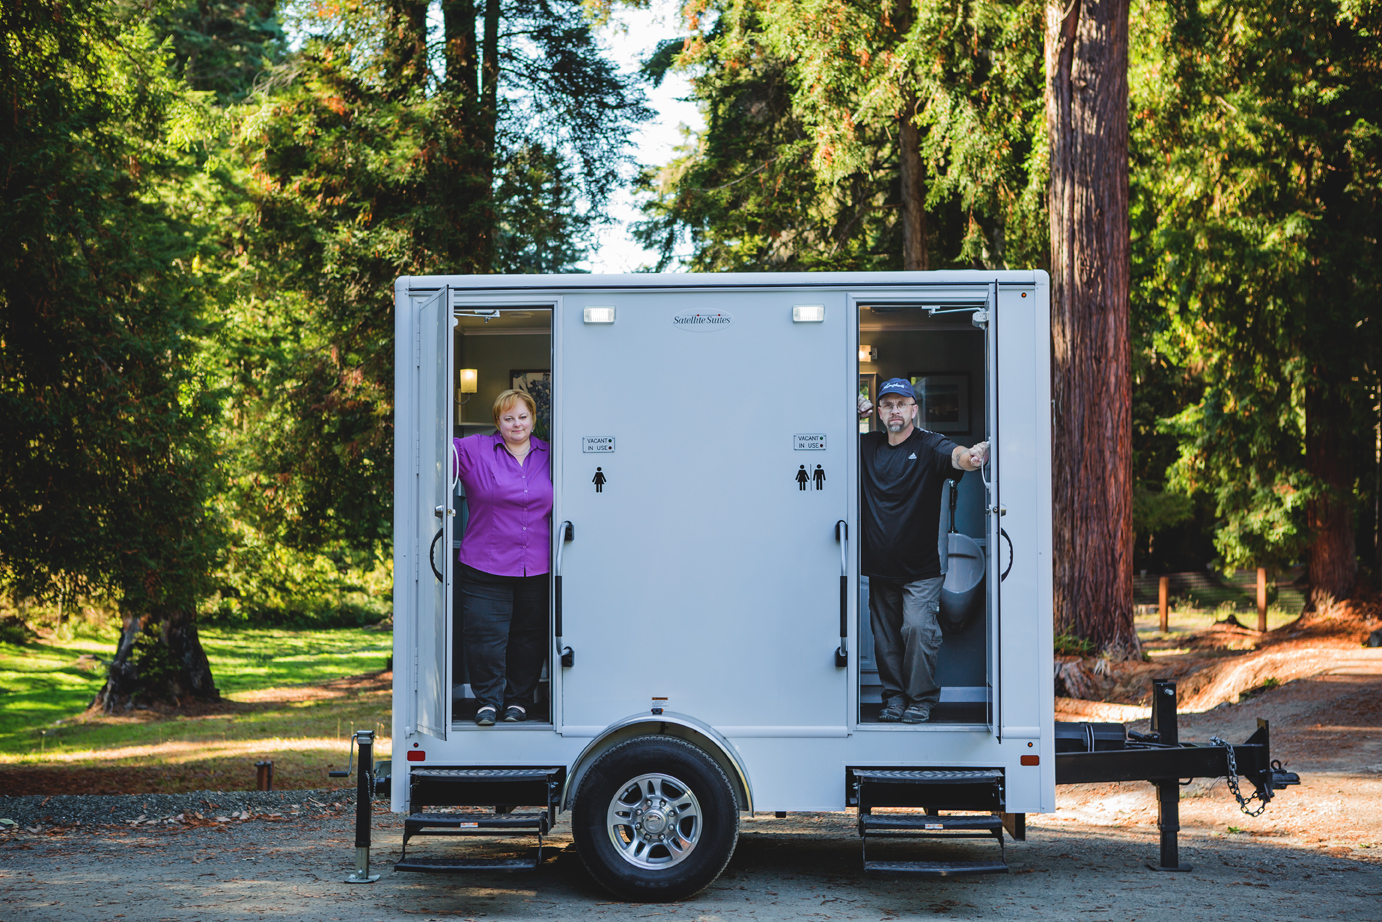 Kari Walsh and Robert Wegner show off their mobile relief station as part of their business, Porta Septic Service, located in Fort Bragg, CA.